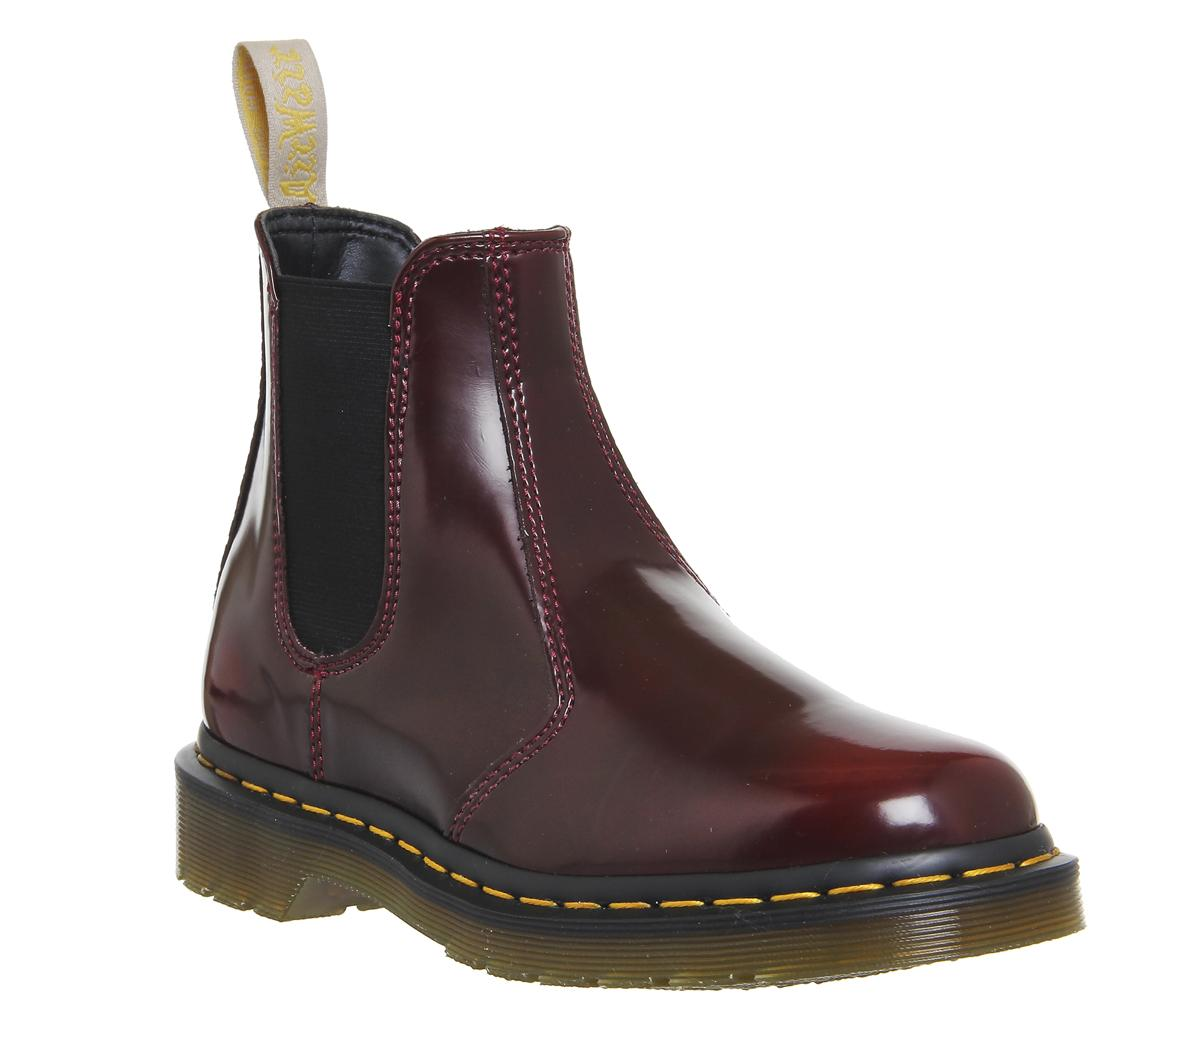 3a0bc471c7e Womens Dr.Martens Vegan 2976 Chelsea Boot Cherry Uk Size 7